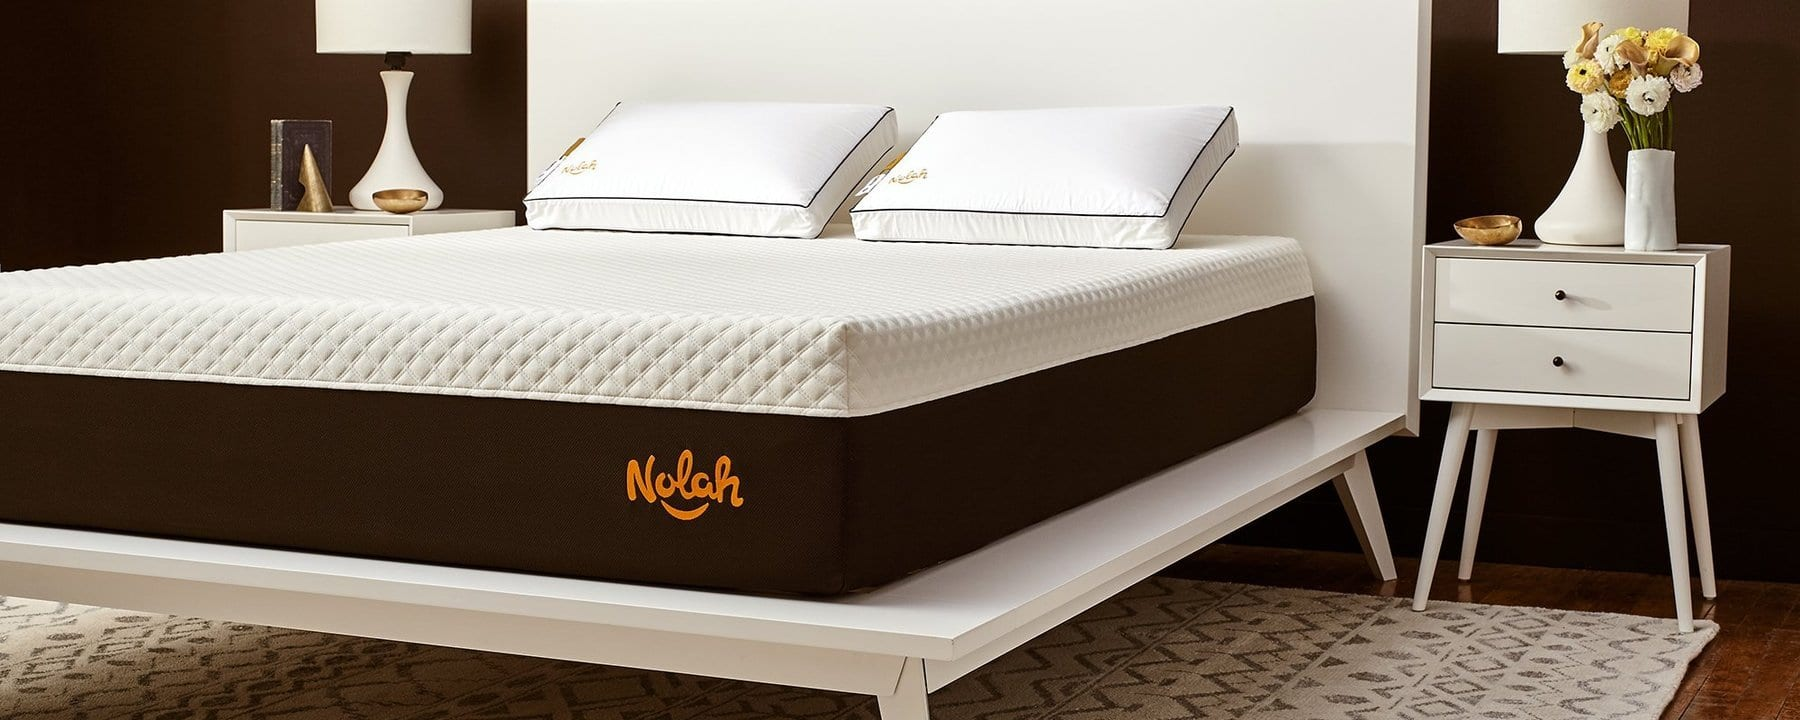 Nolah Signature vs Puffy Lux: Which is right for you?